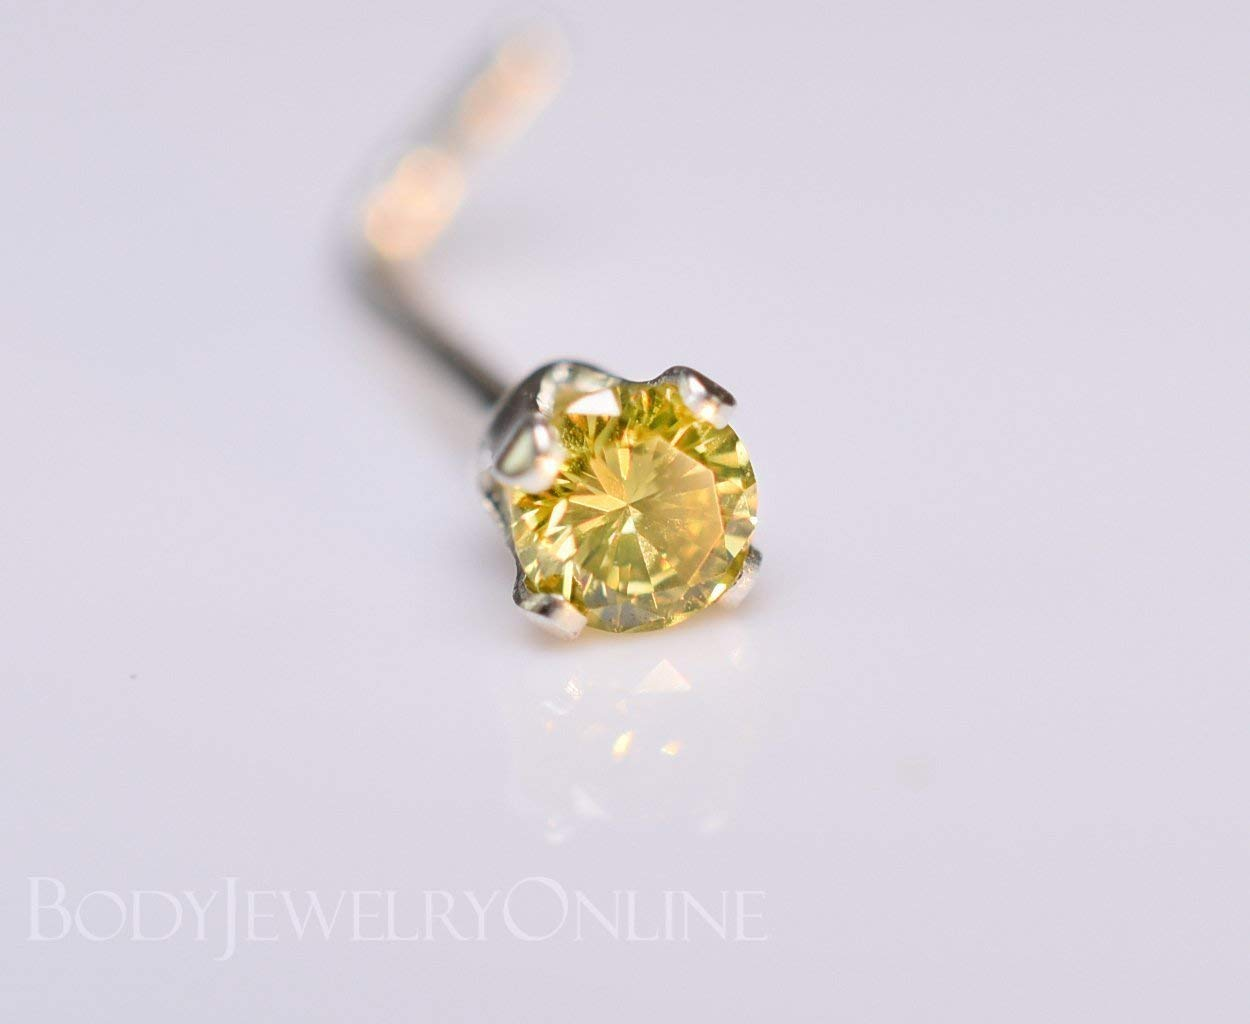 dda3c2264 Get Quotations · Genuine CANARY YELLOW DIAMOND Nose Stud 2mm - Post w/ 14k  Solid Yellow or White